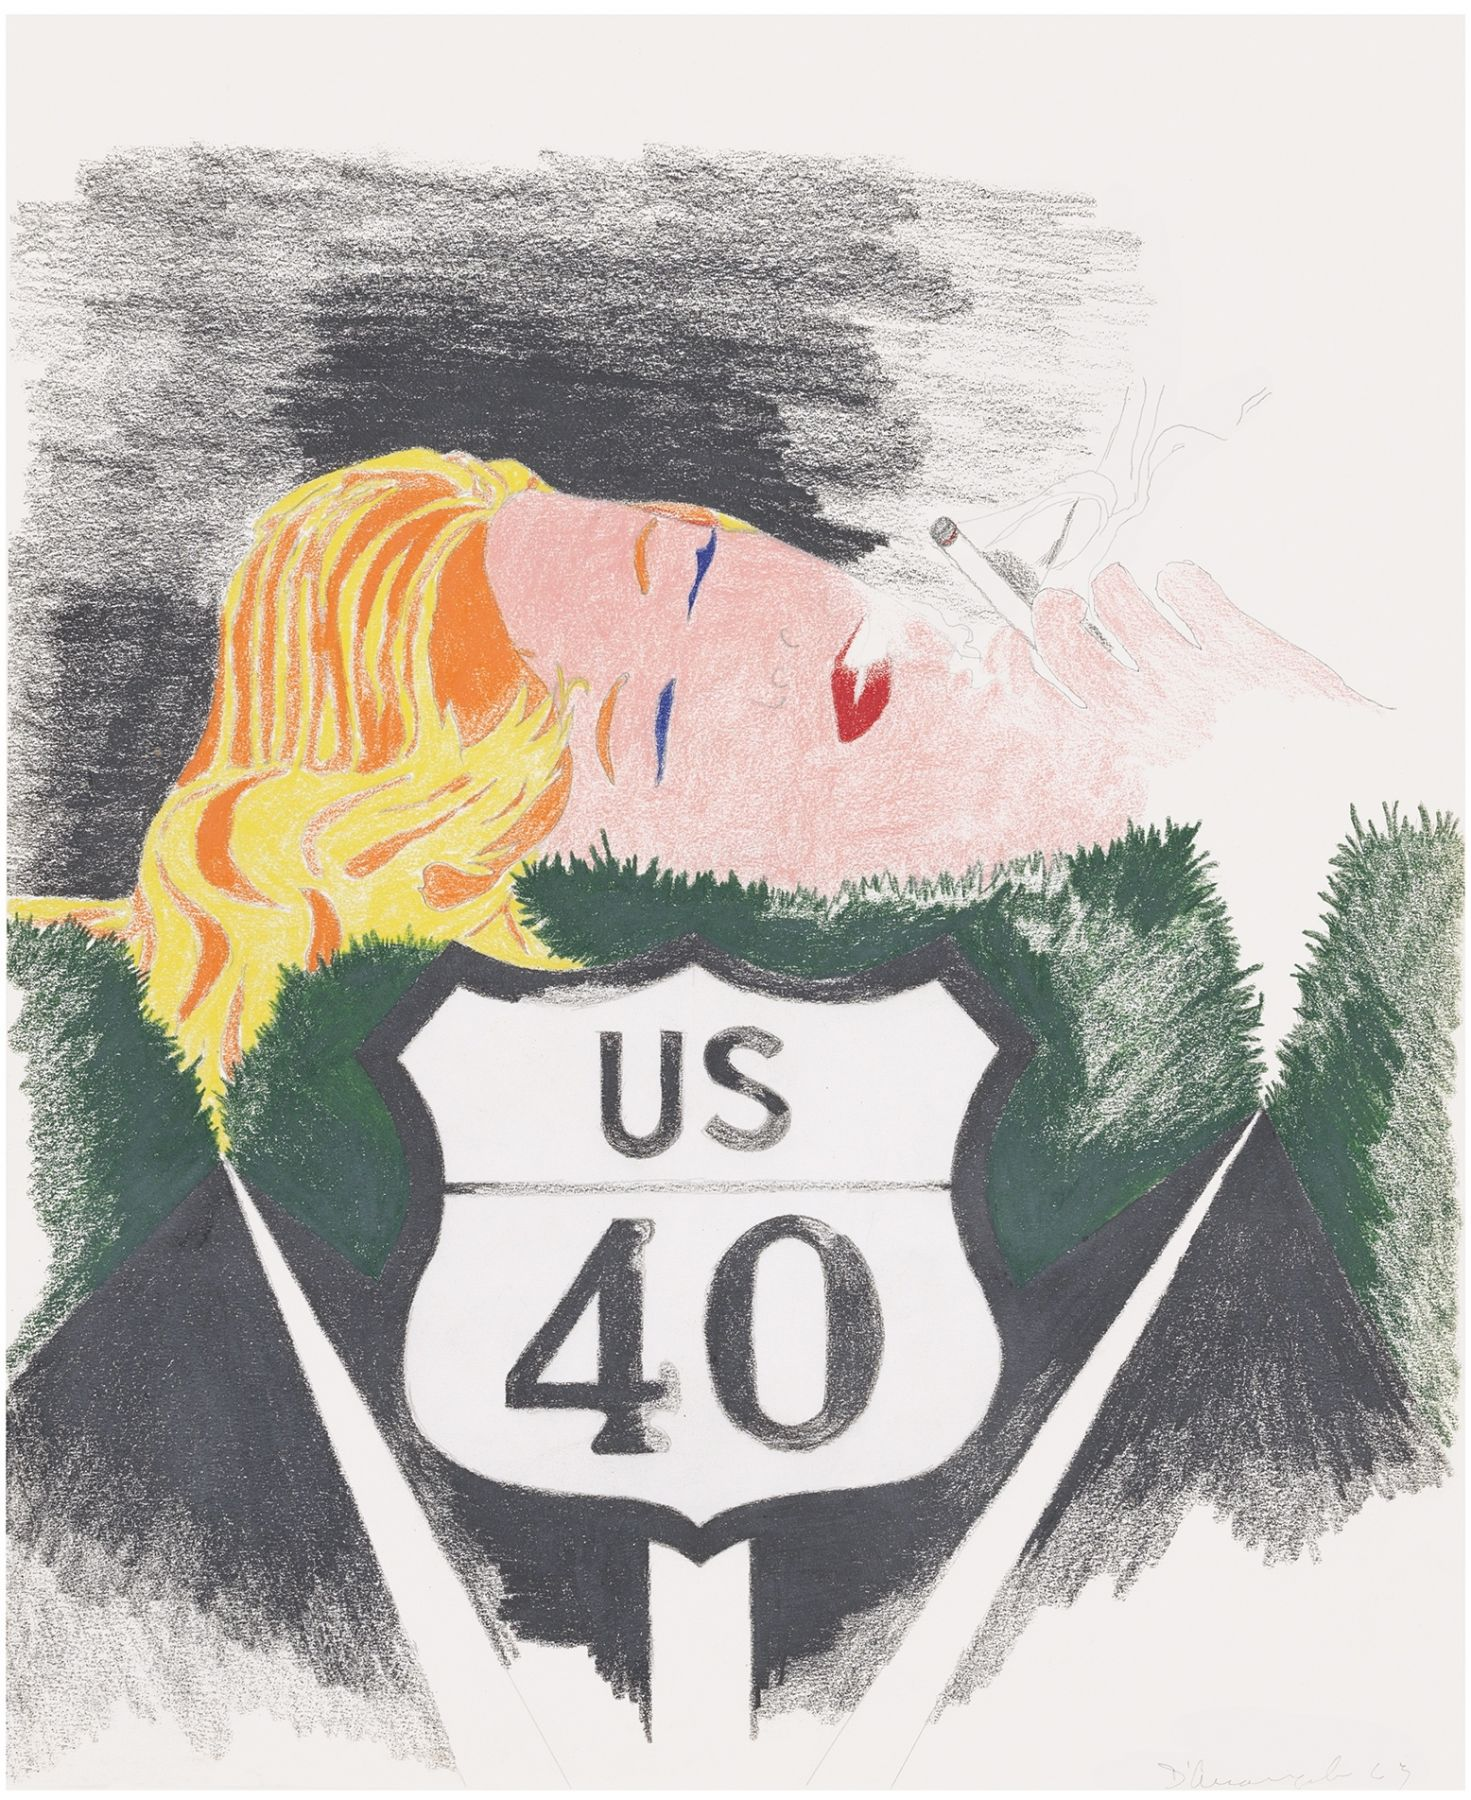 US Route 40 sign on road with woman smoking cigarette